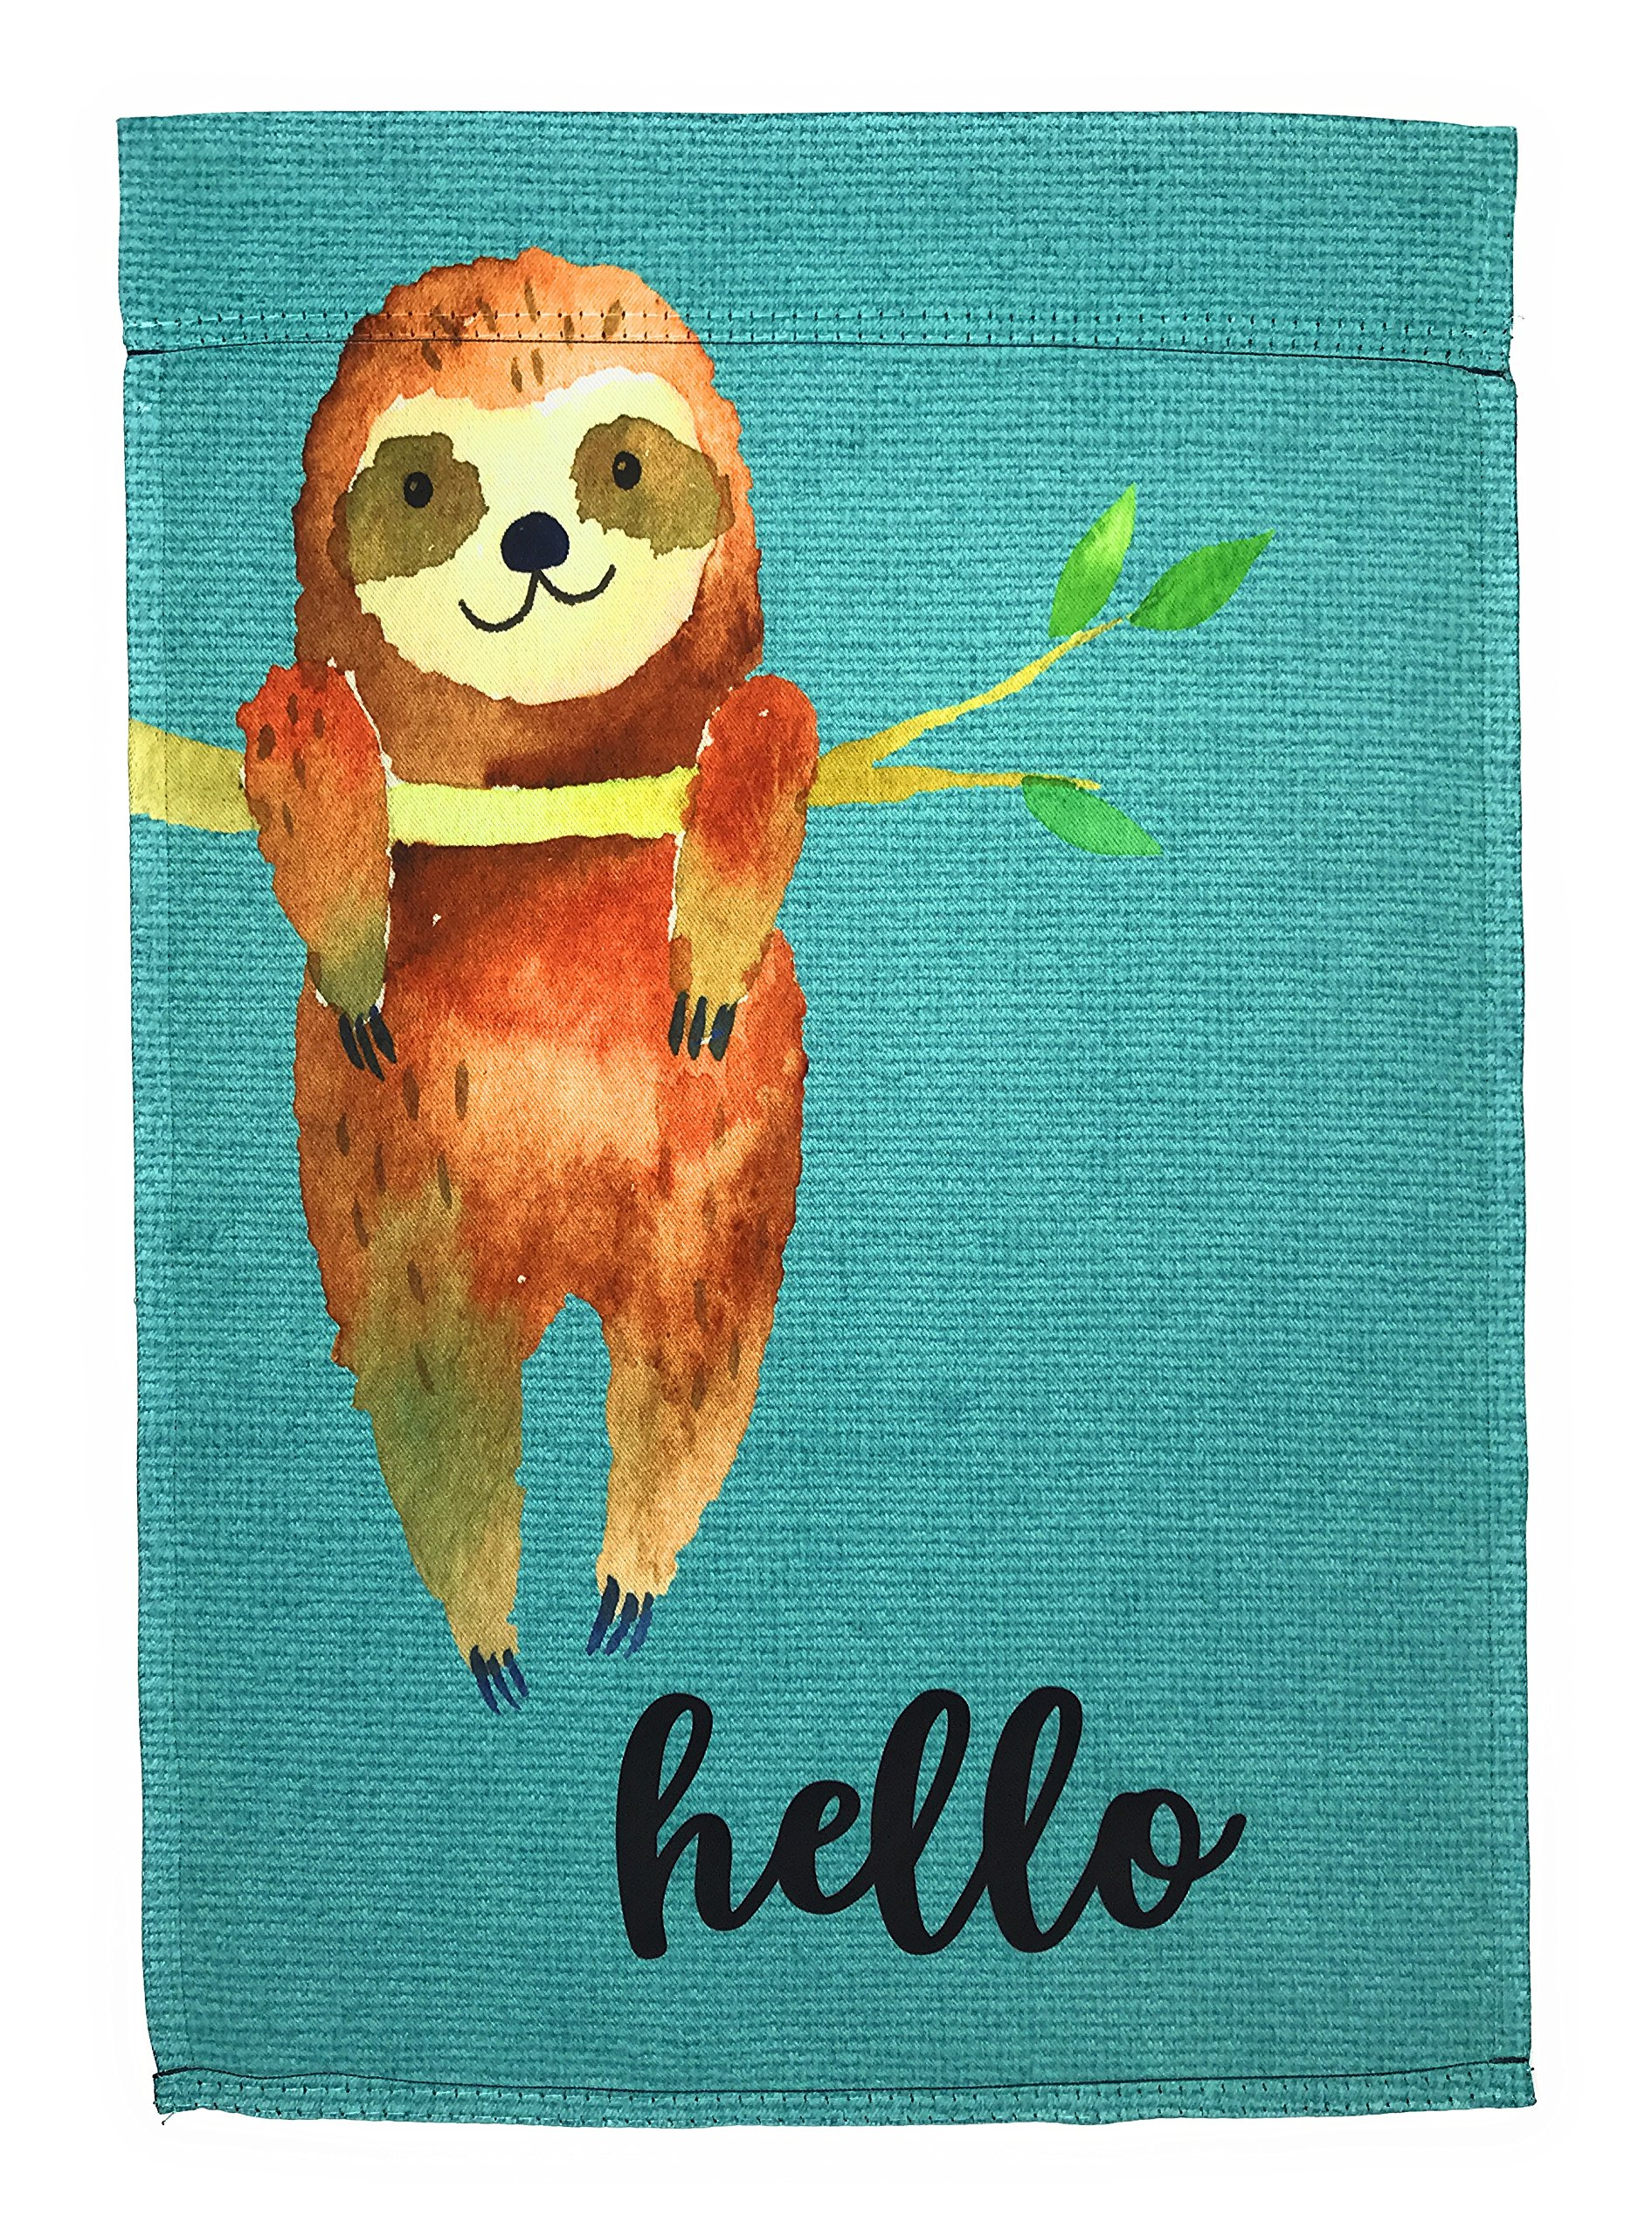 Lantern Hill Garden Flag 12 inches by 18 inches Double Sided Reads Correctly Both Sides (Cute Hello Sloth)